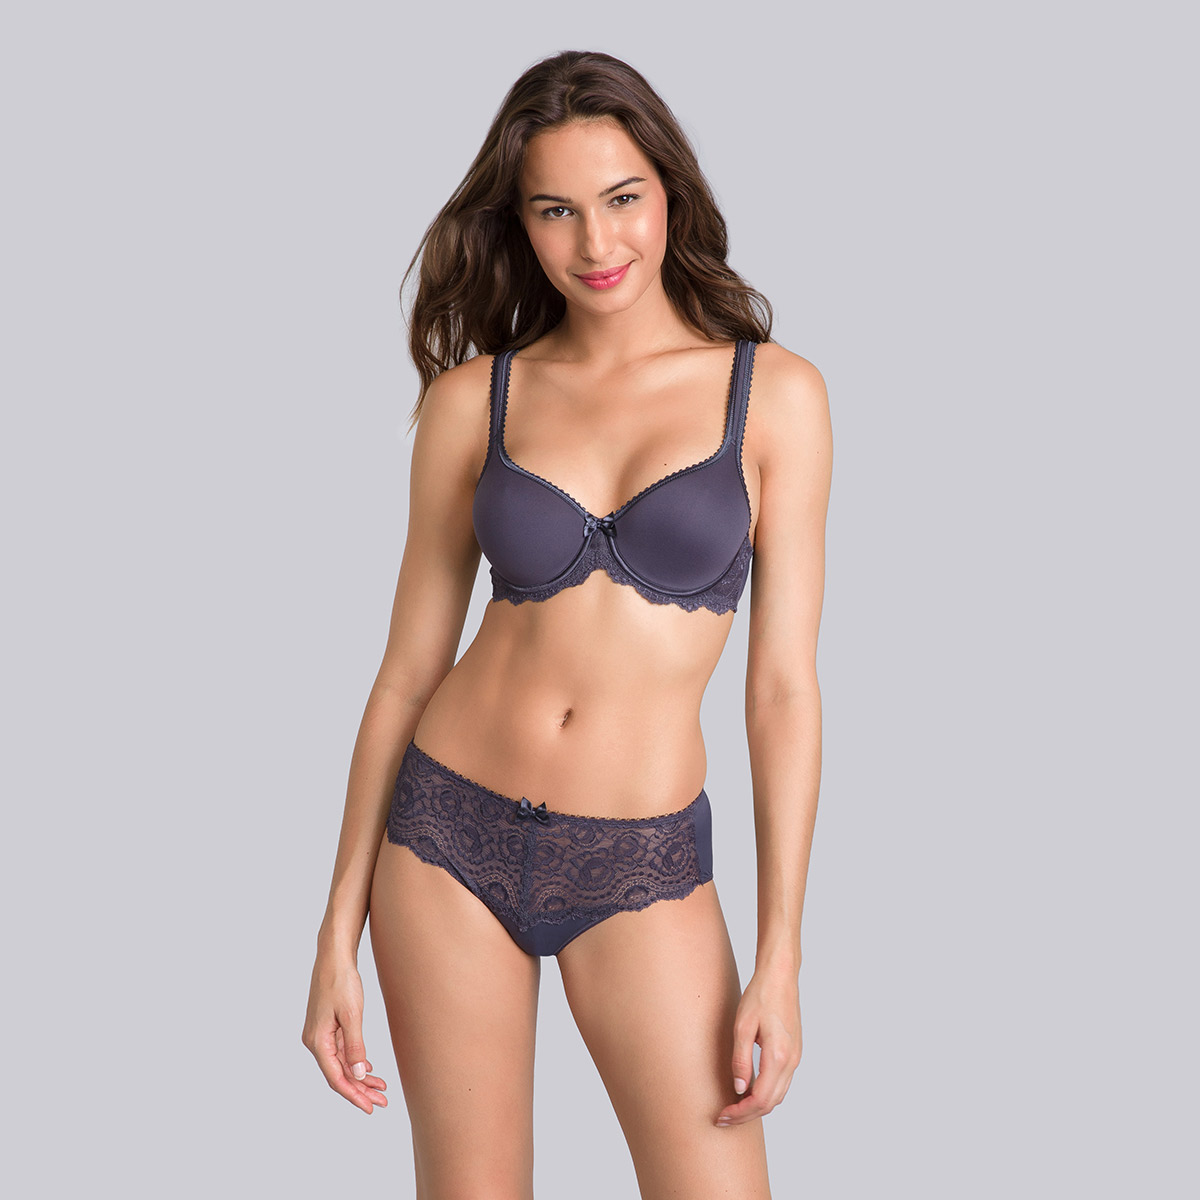 Steel grey spacer bra - Flower Elegance-PLAYTEX